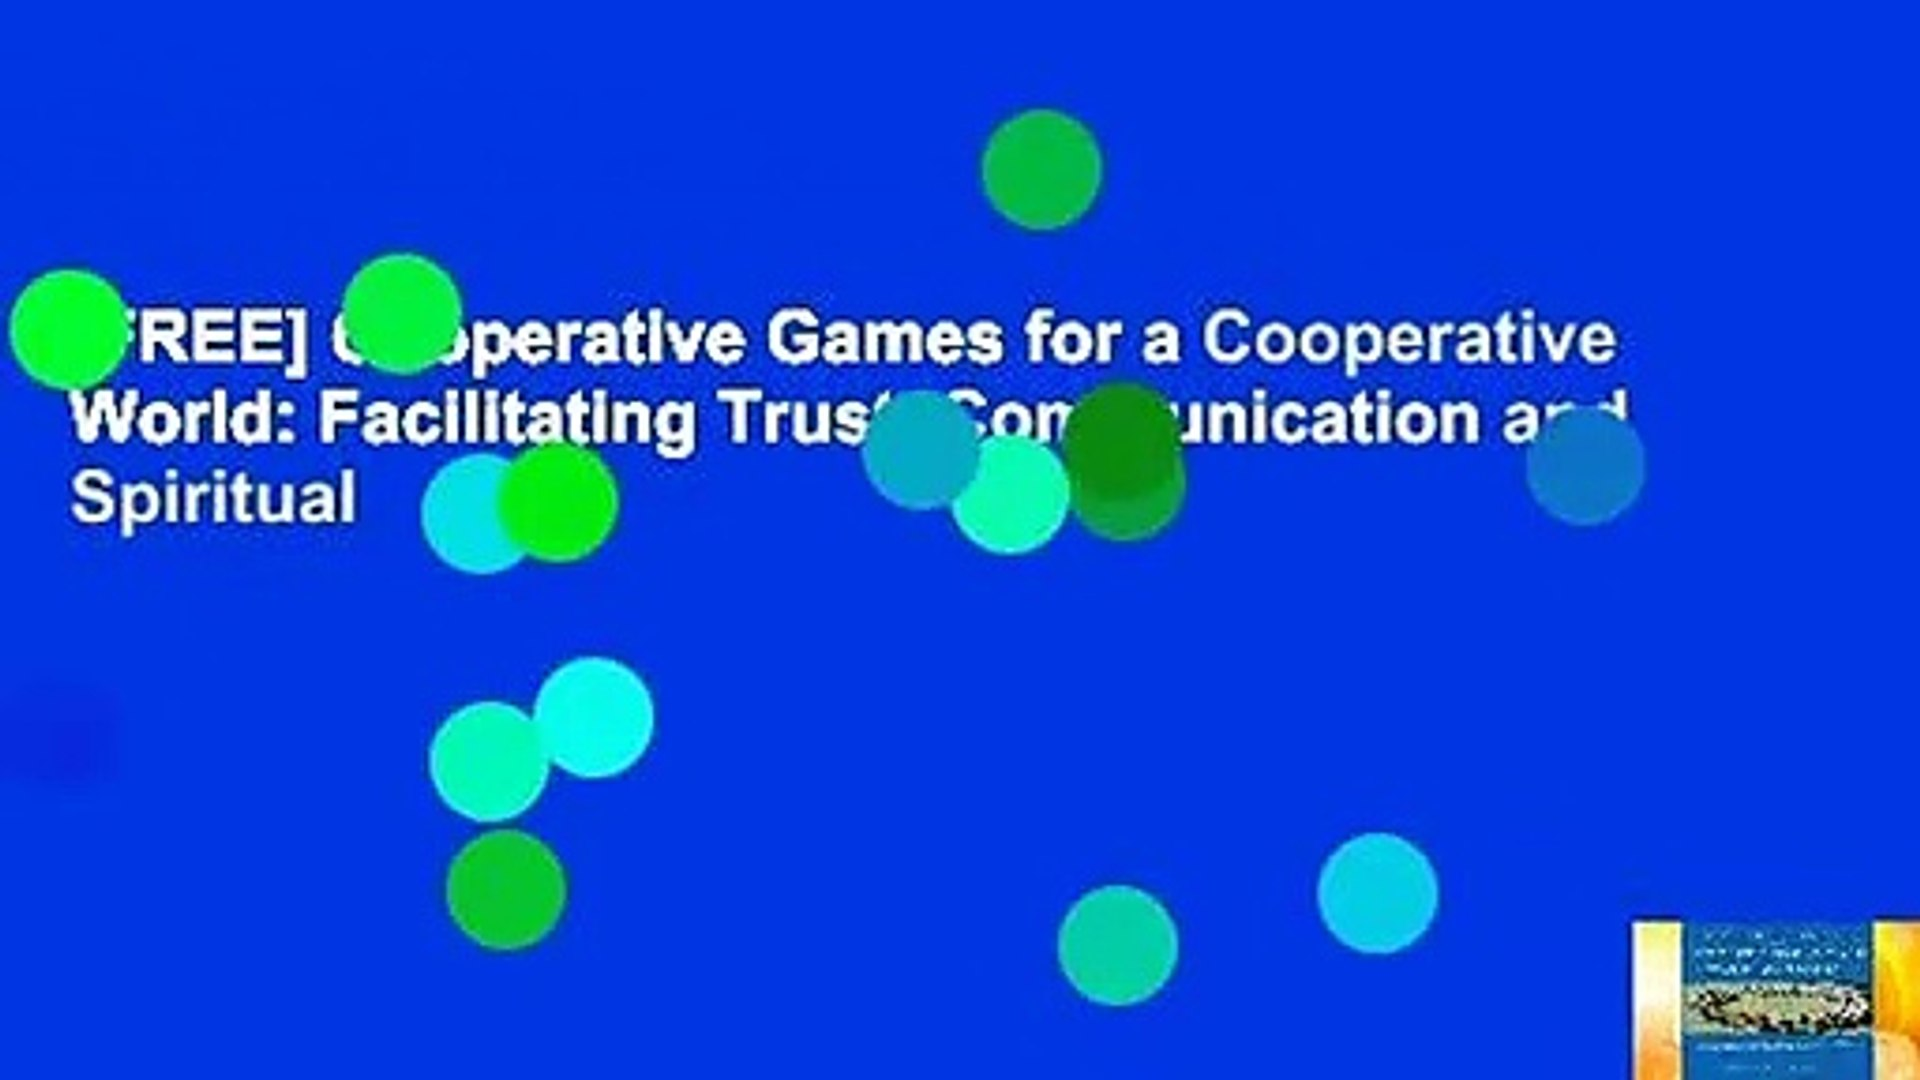 [FREE] Cooperative Games for a Cooperative World: Facilitating Trust, Communication and Spiritual